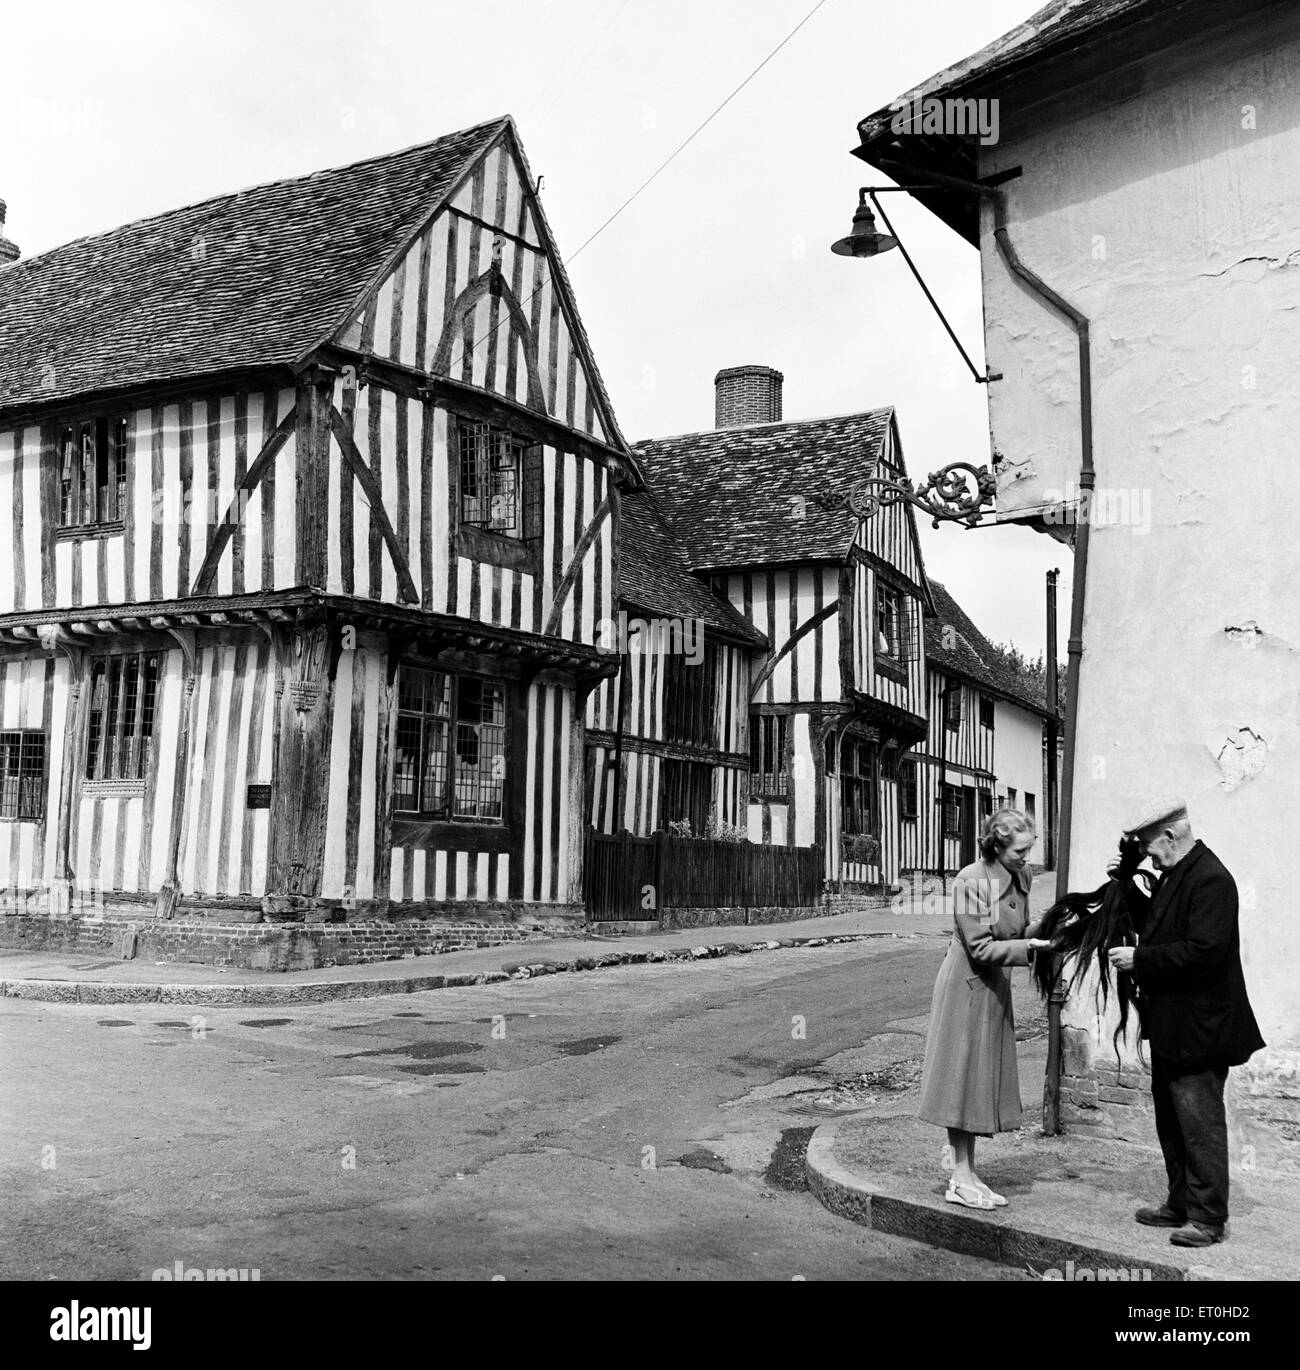 Lavenham Wool Hall, a Grade I listed sixteenth century timber framed building on Lady Street in Lavenham, Suffolk. - Stock Image